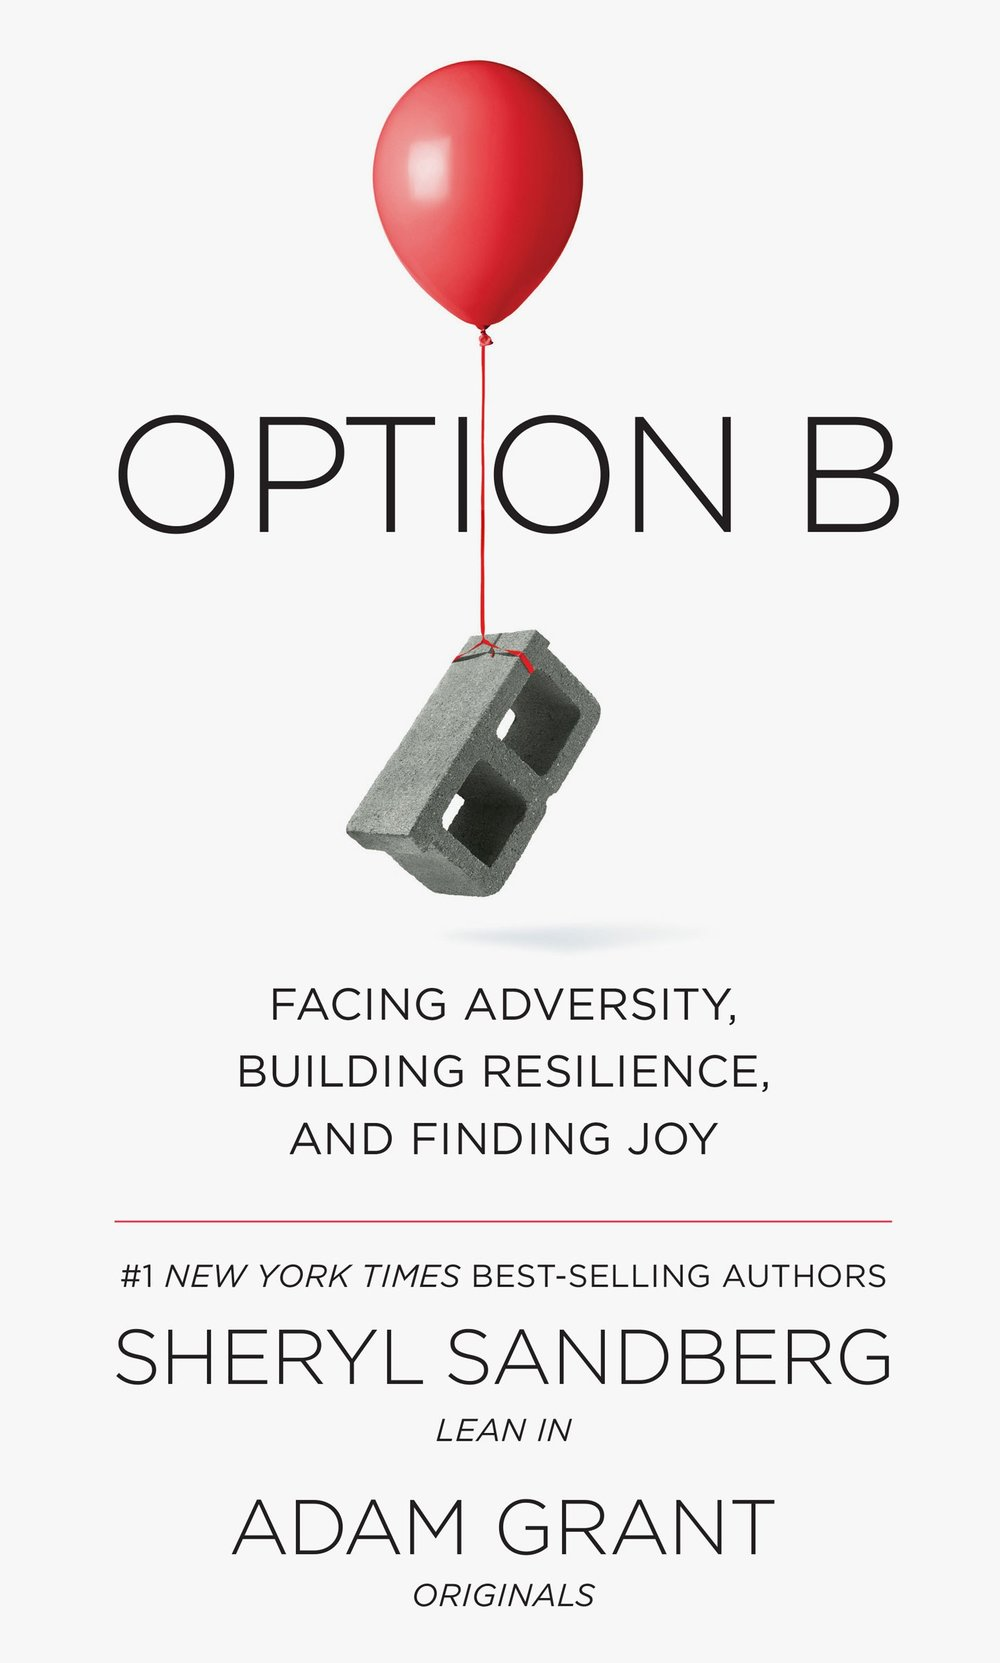 OptionBBookCover.jpg